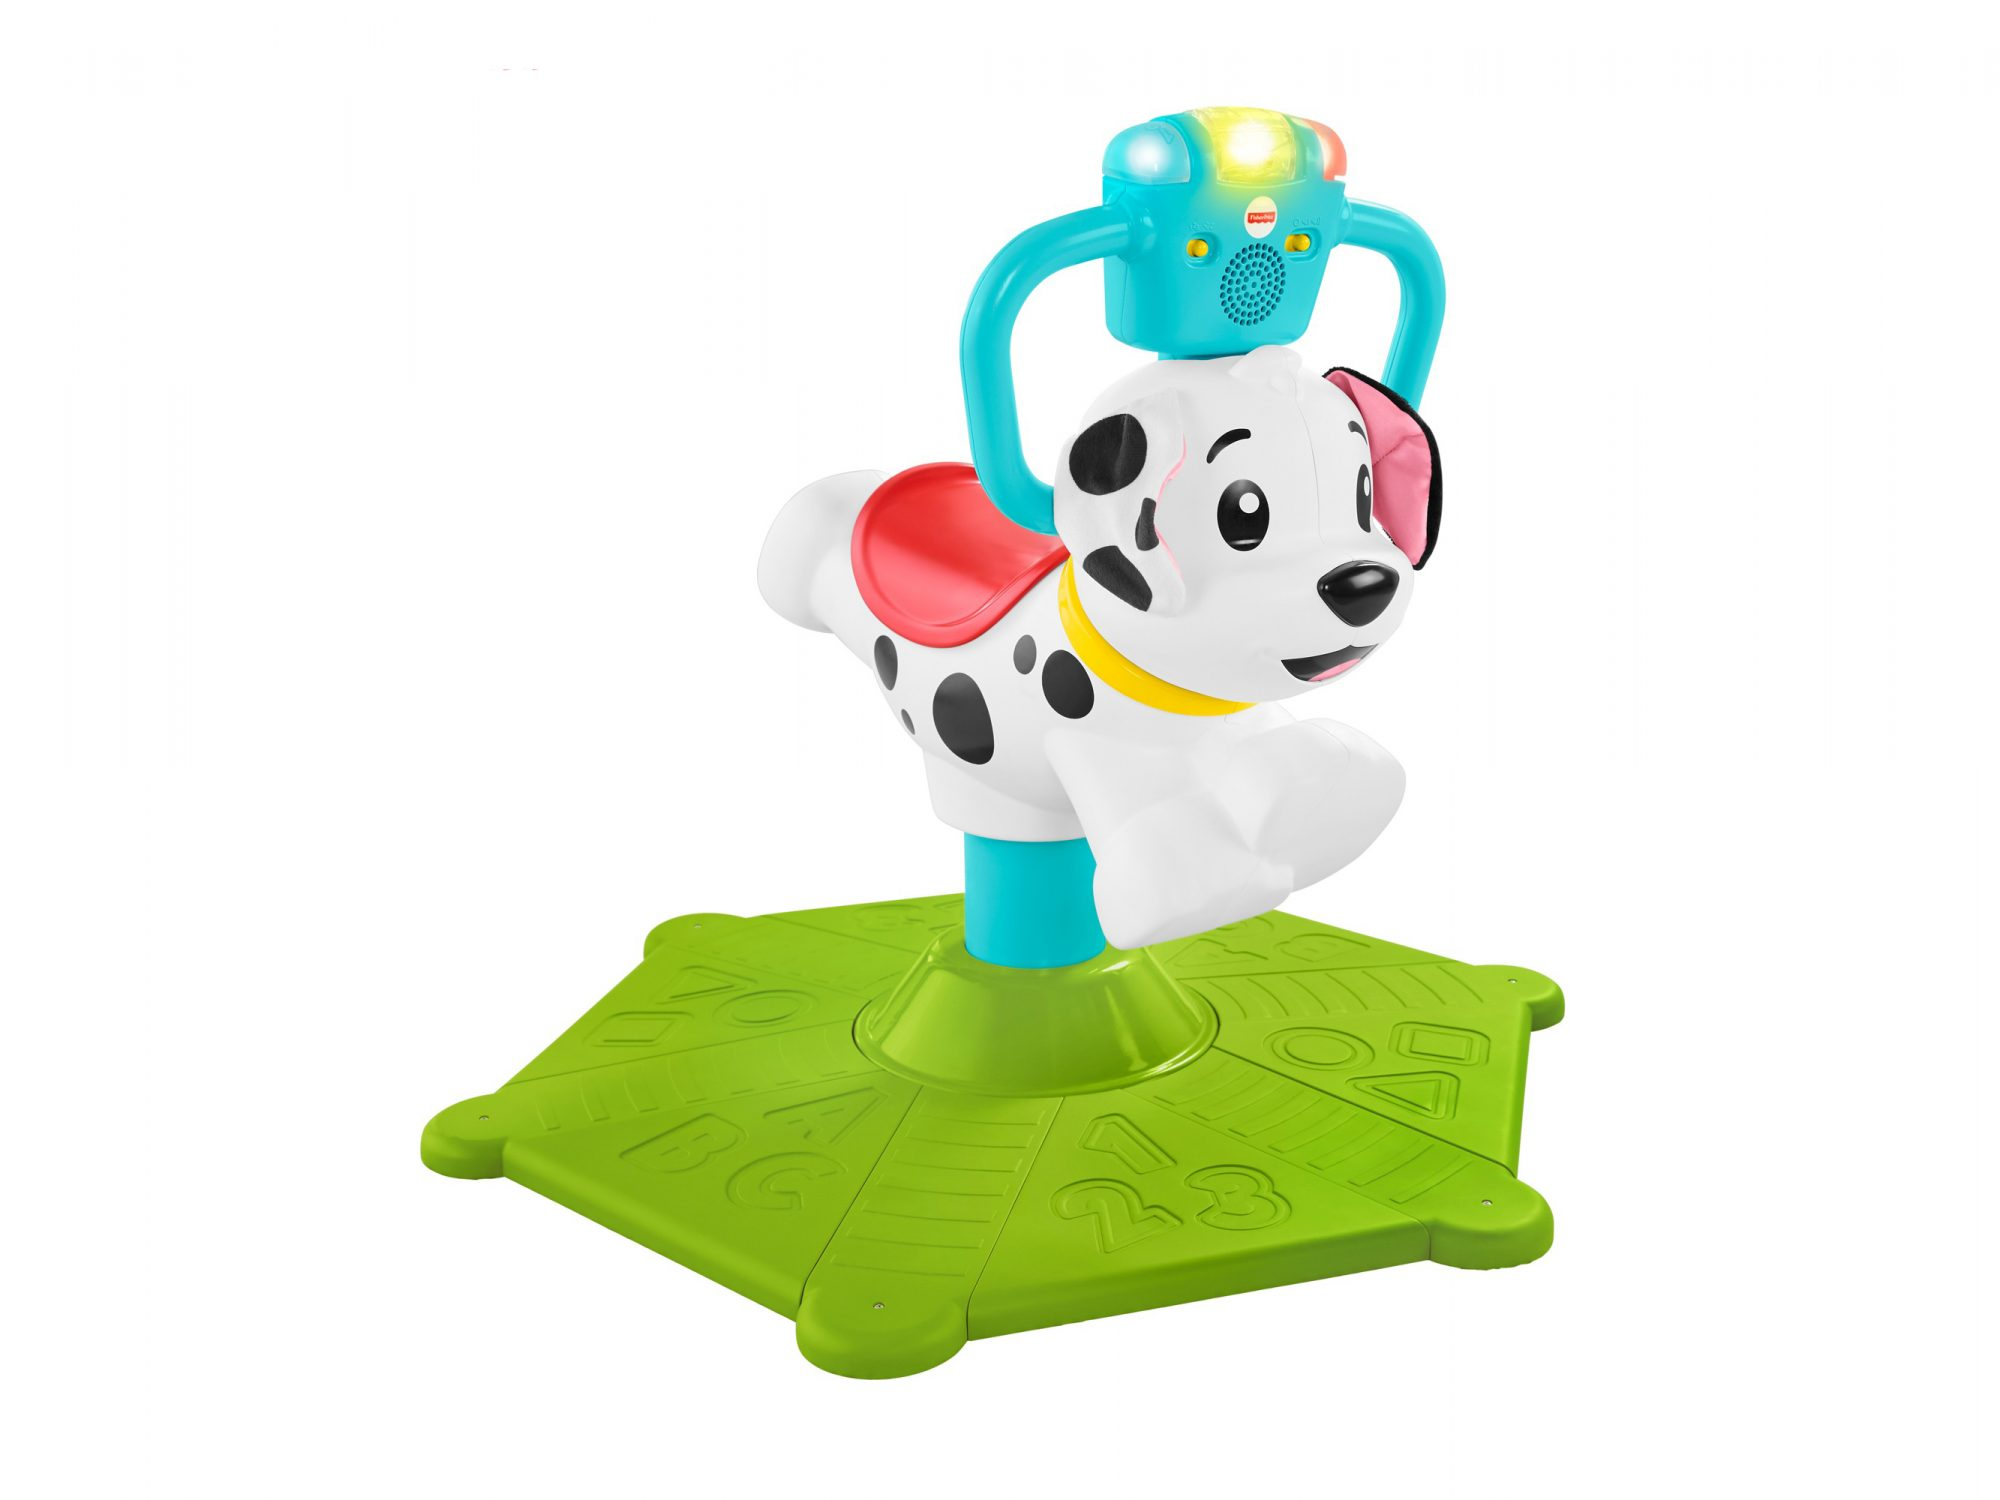 RX_1911 Walmart Top Christmas Toys_Fisher-Price Bounce and Spin Interactive Puppy